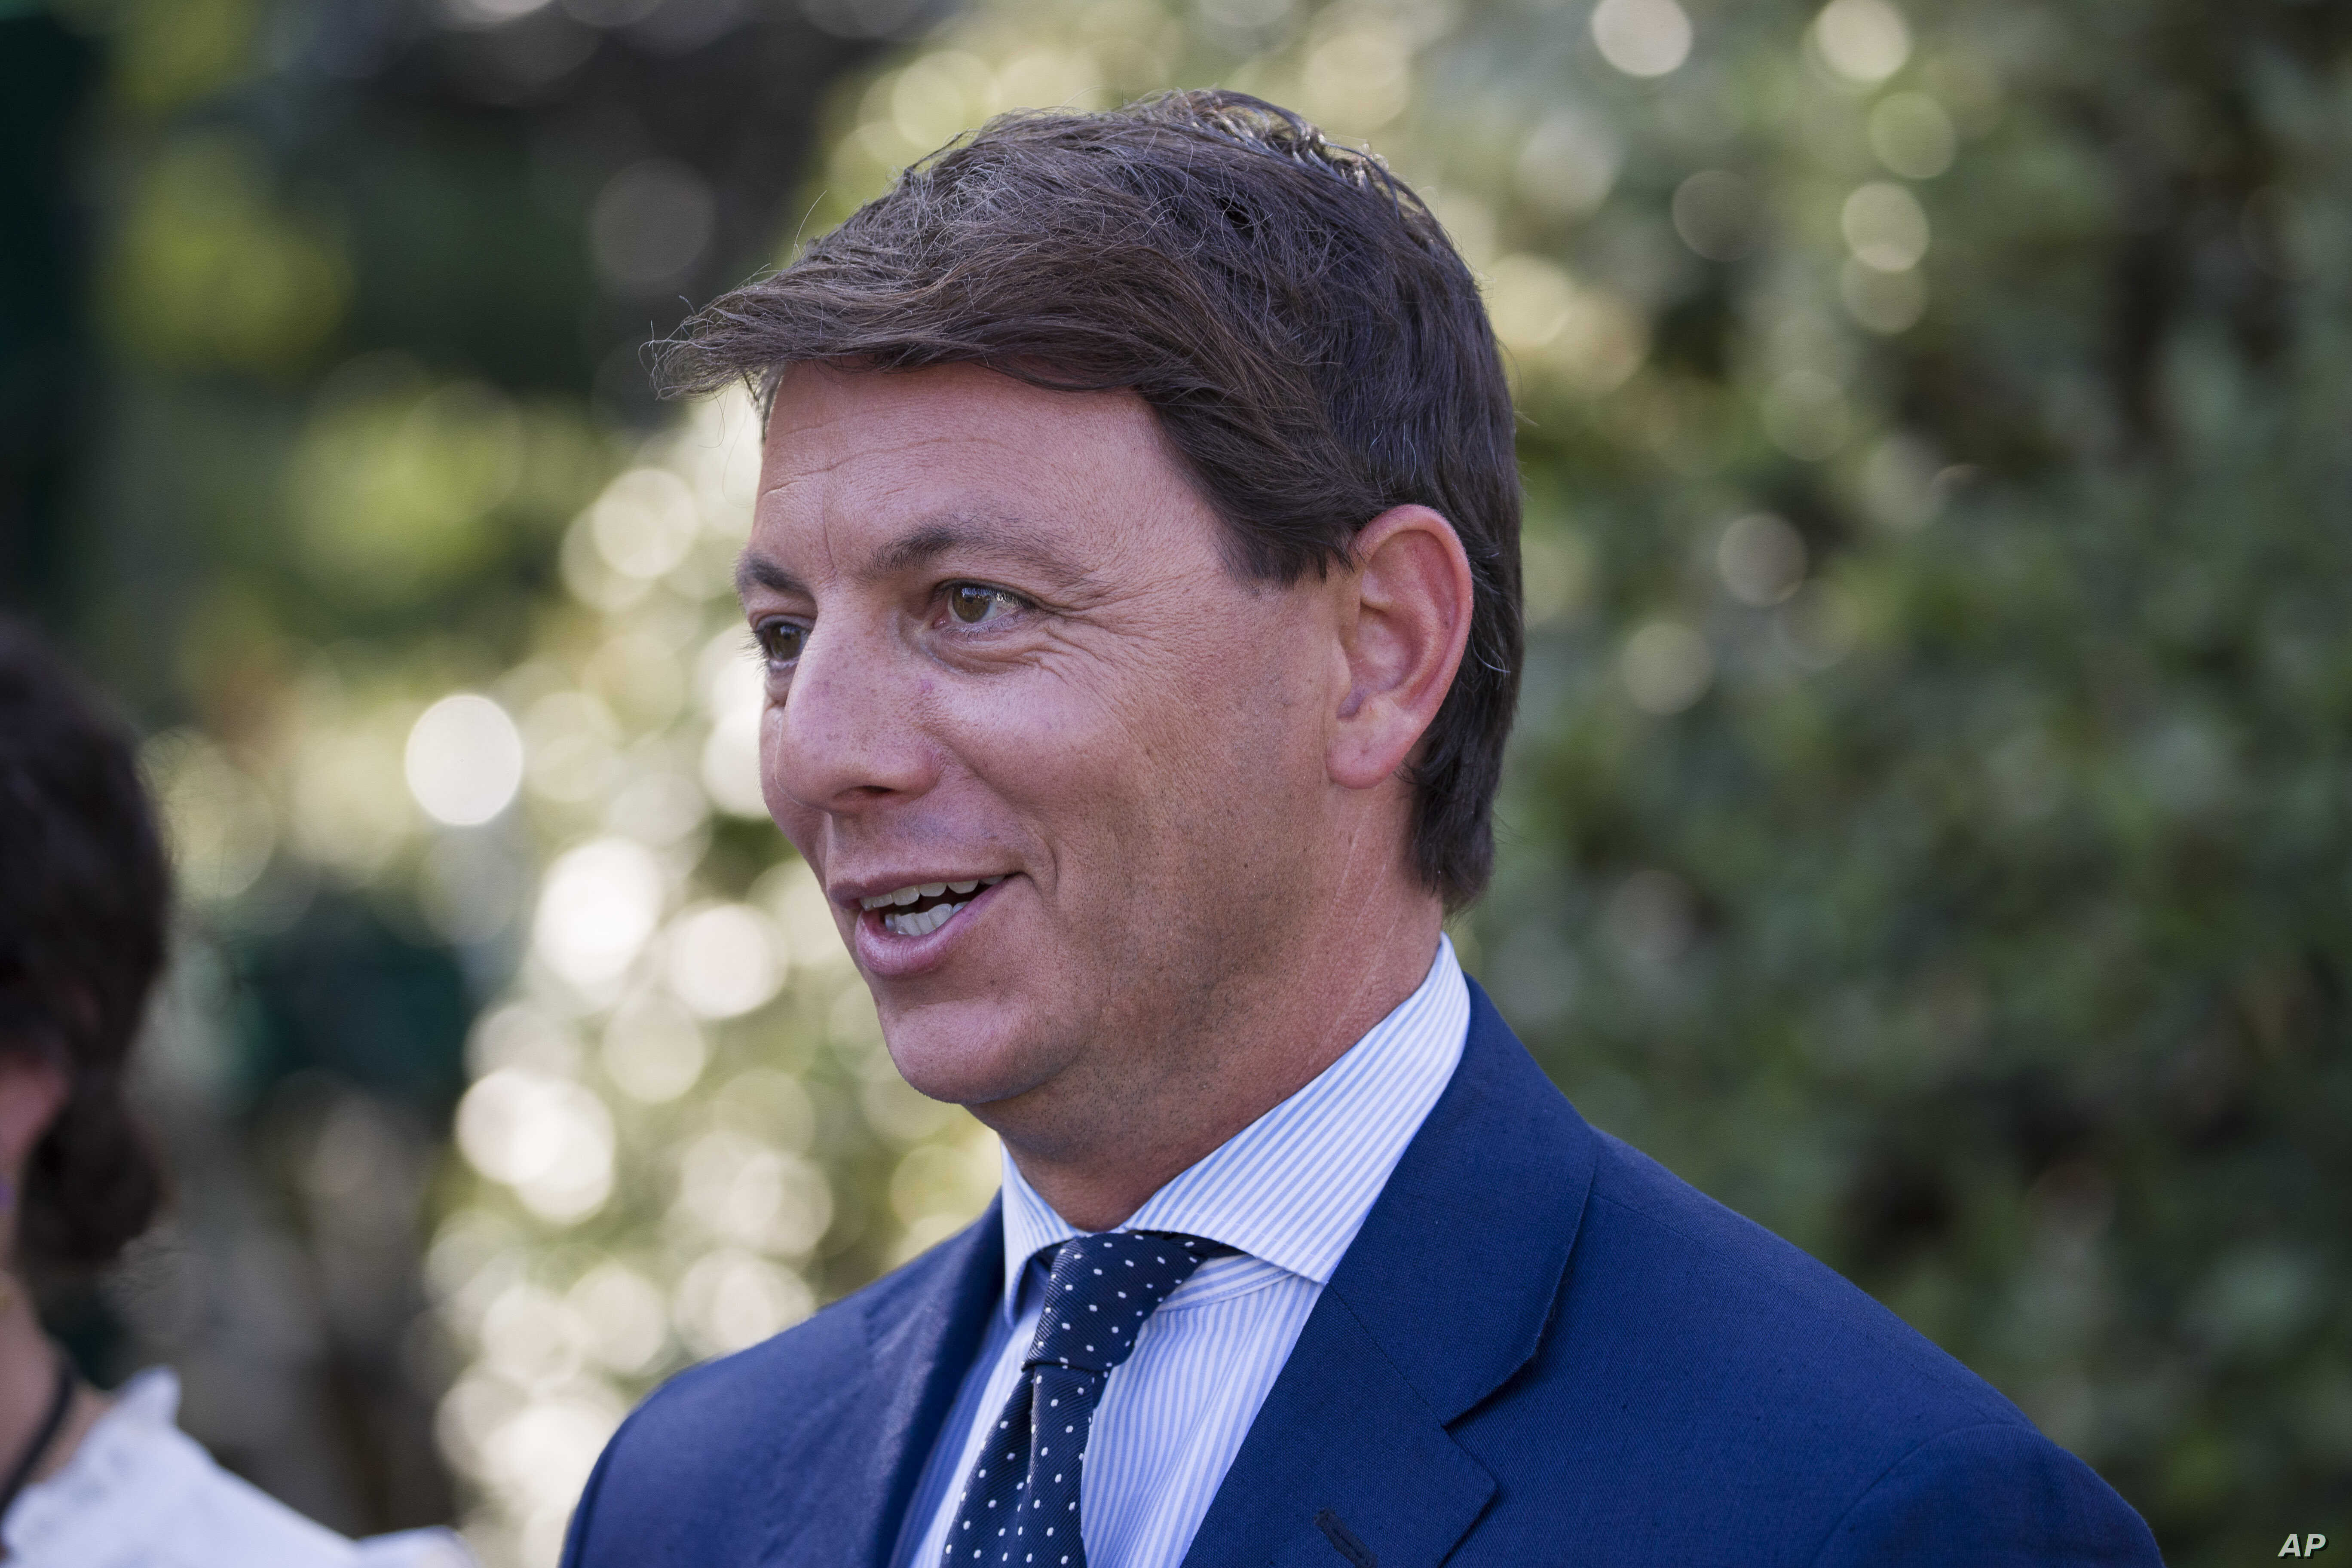 Deputy White House press secretary Hogan Gidley walks back to the West Wing after a television interview at the White House, Tuesday, Aug. 6, 2019, in Washington. (AP Photo/Alex Brandon)